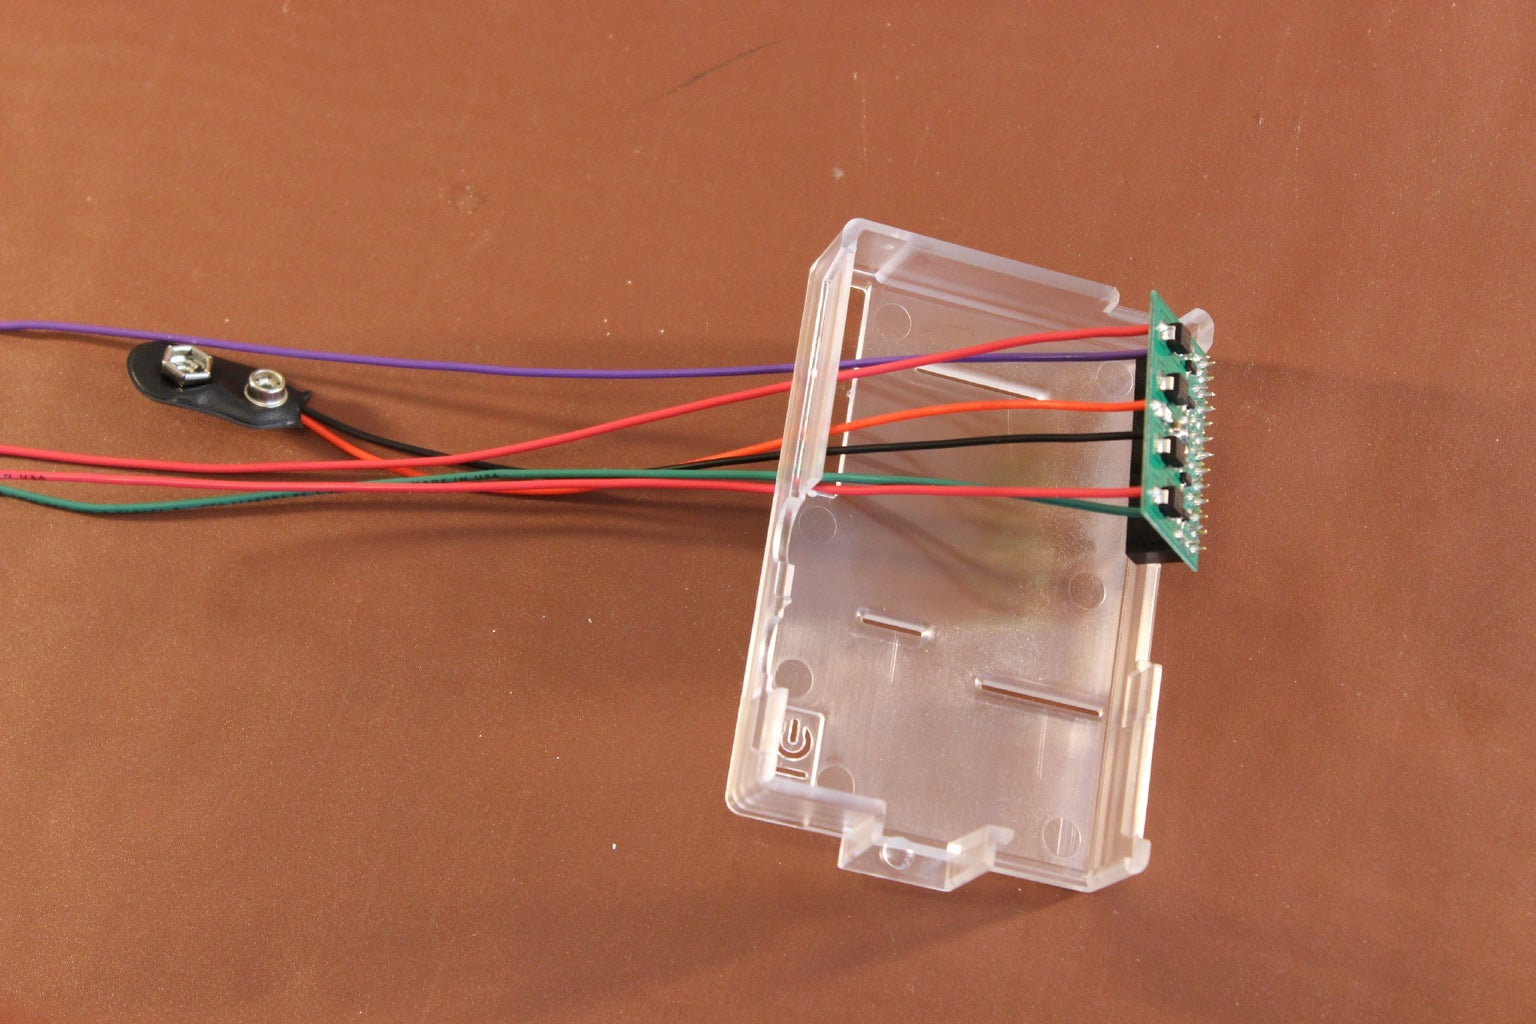 Thread the Wires Through the Case